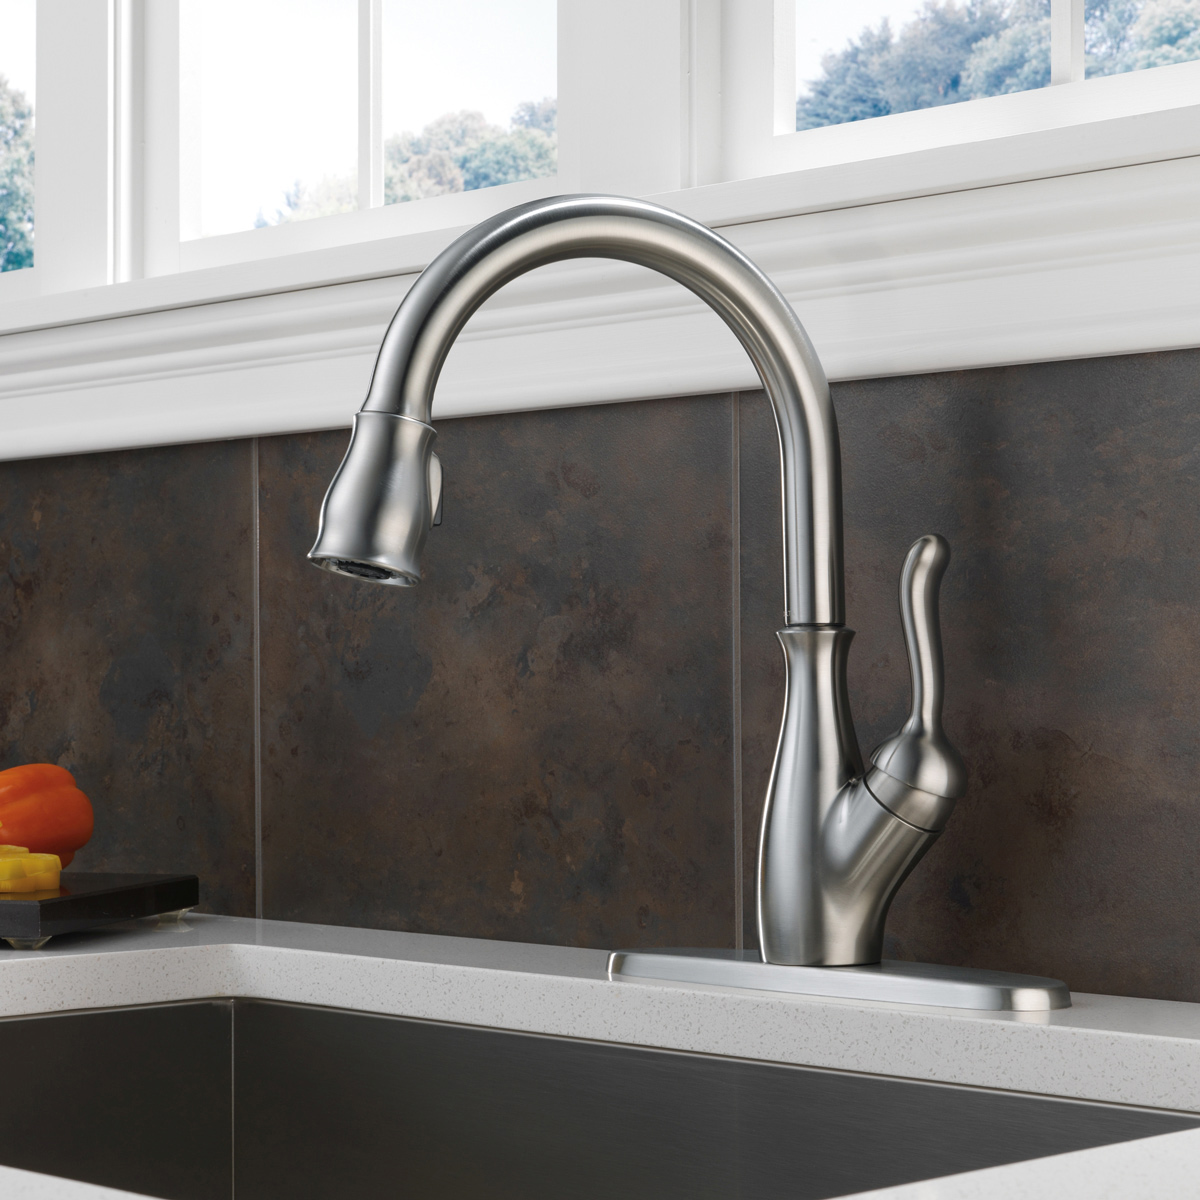 Bath4All - Delta 9178-AR-DST Leland Pull-Down Kitchen Faucet with ...